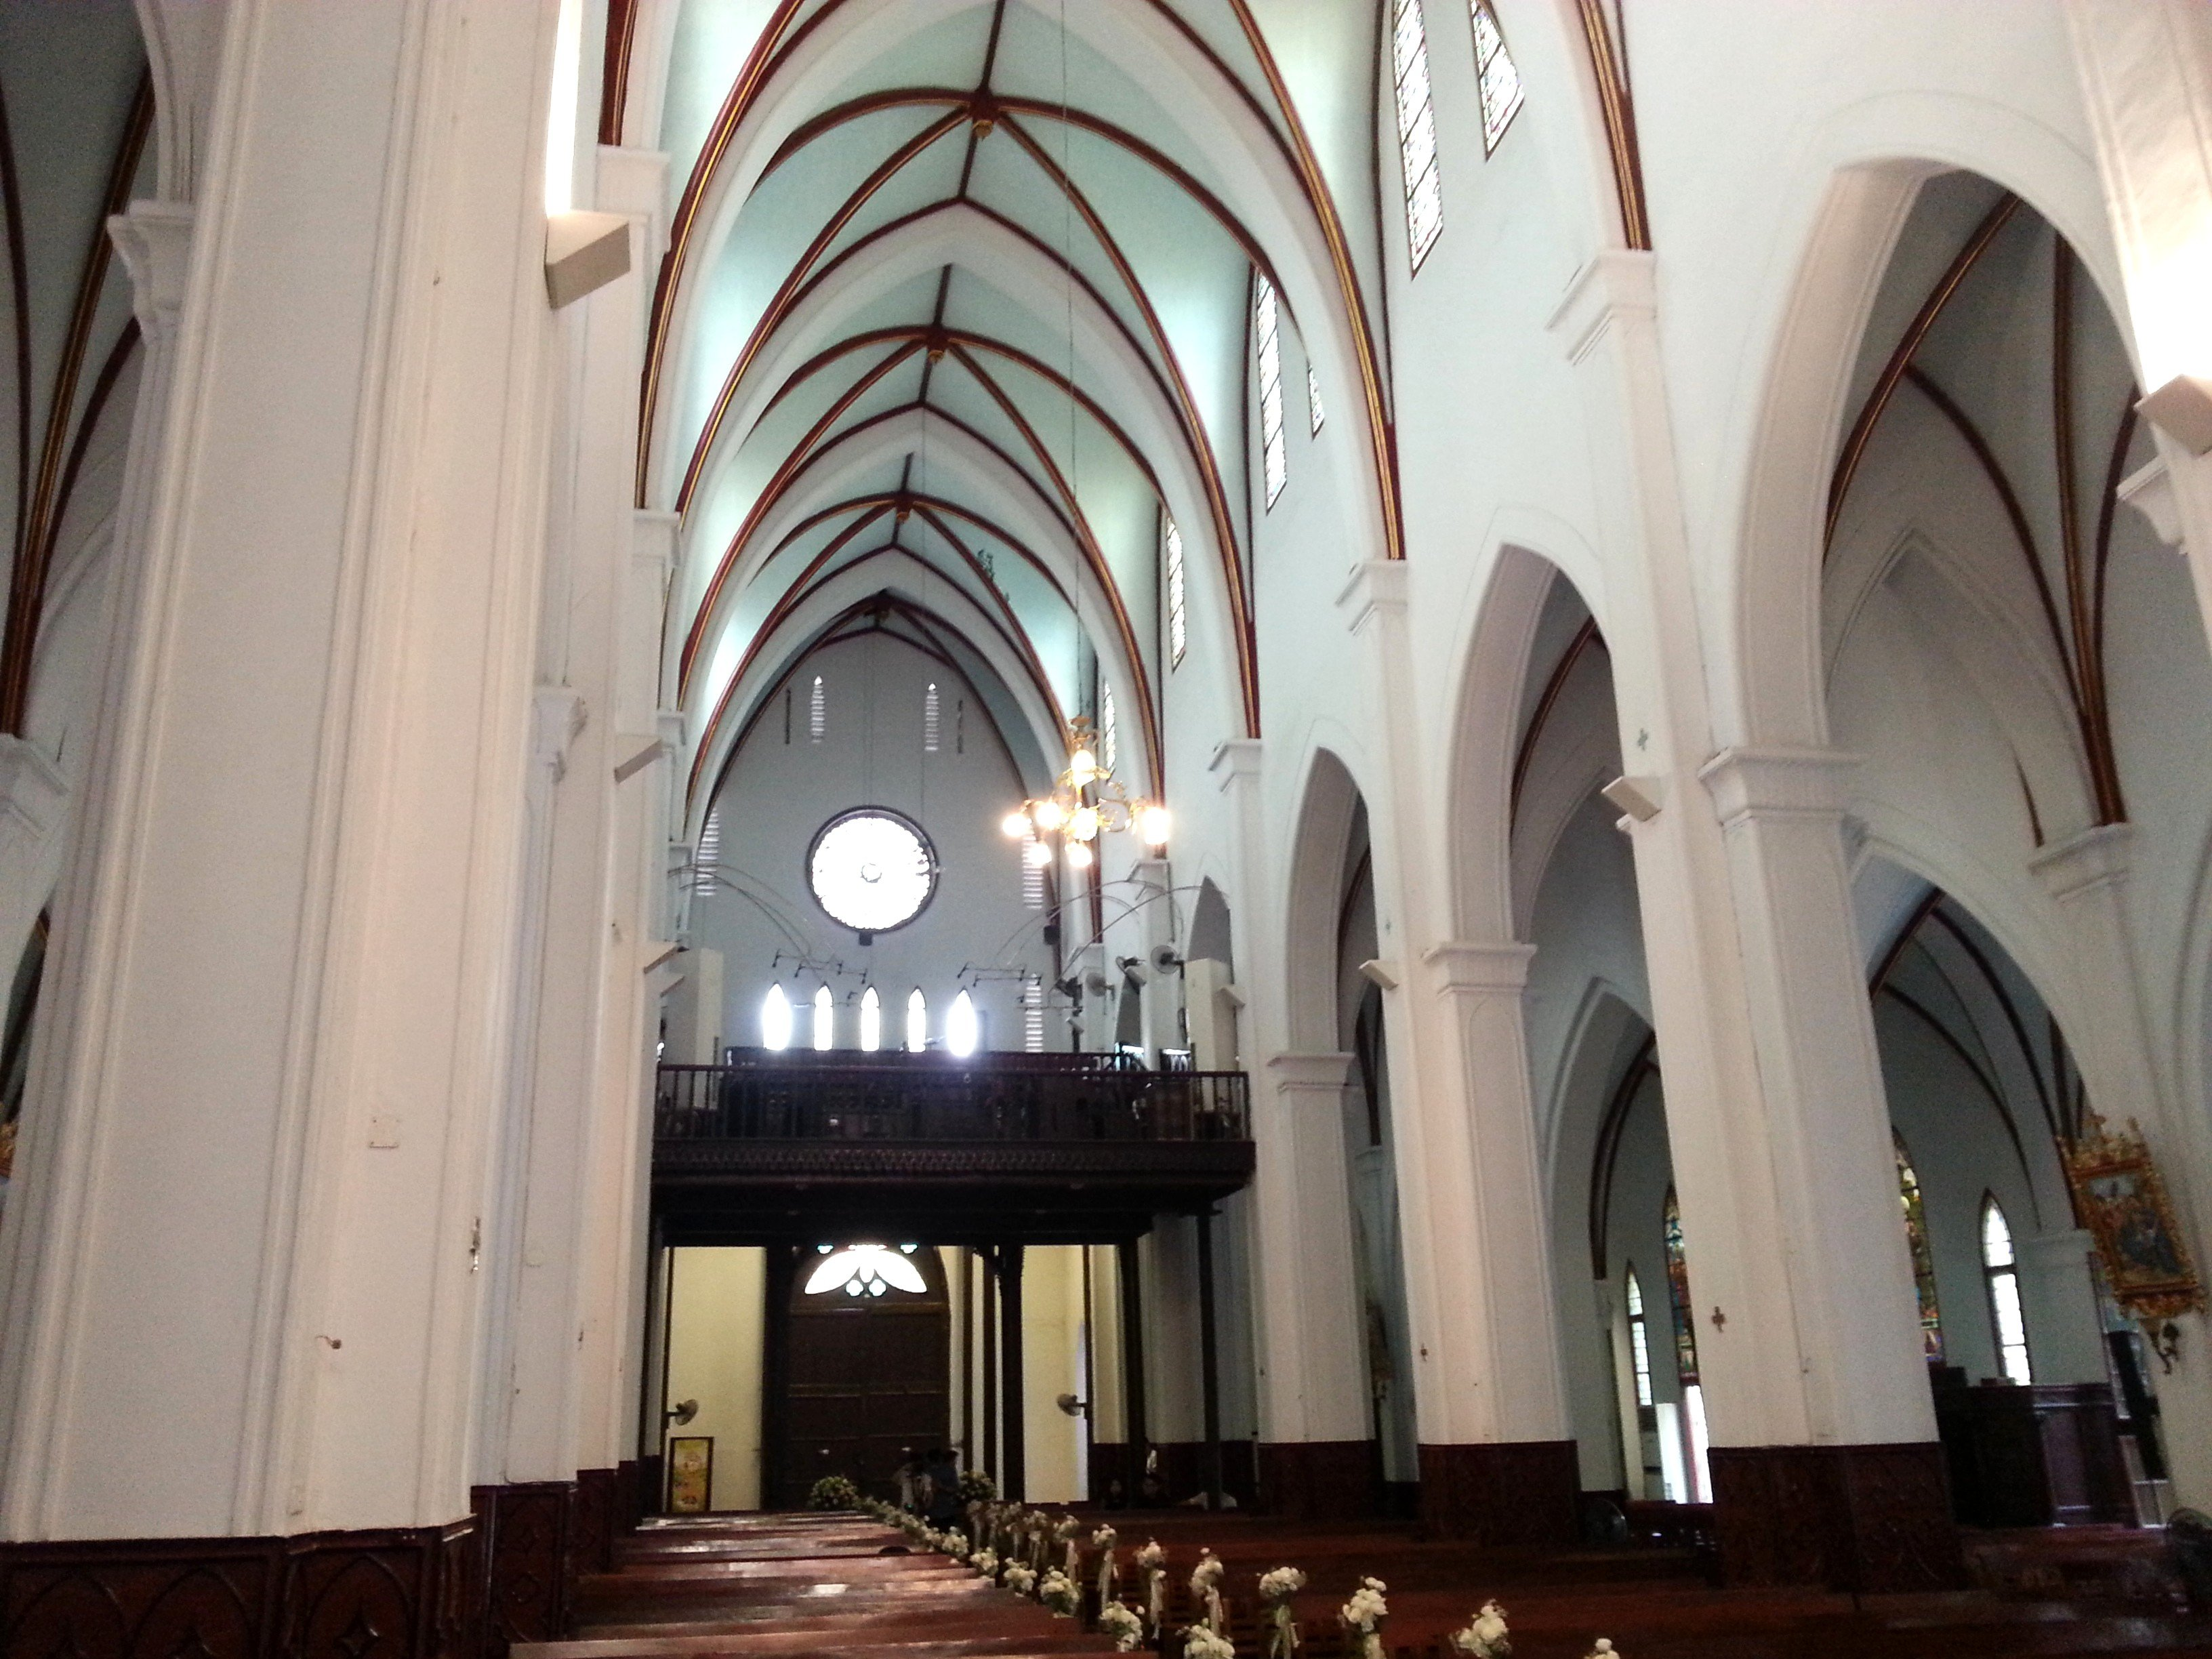 Vaulted ceilings at St Joseph's Cathedral in Hanoi